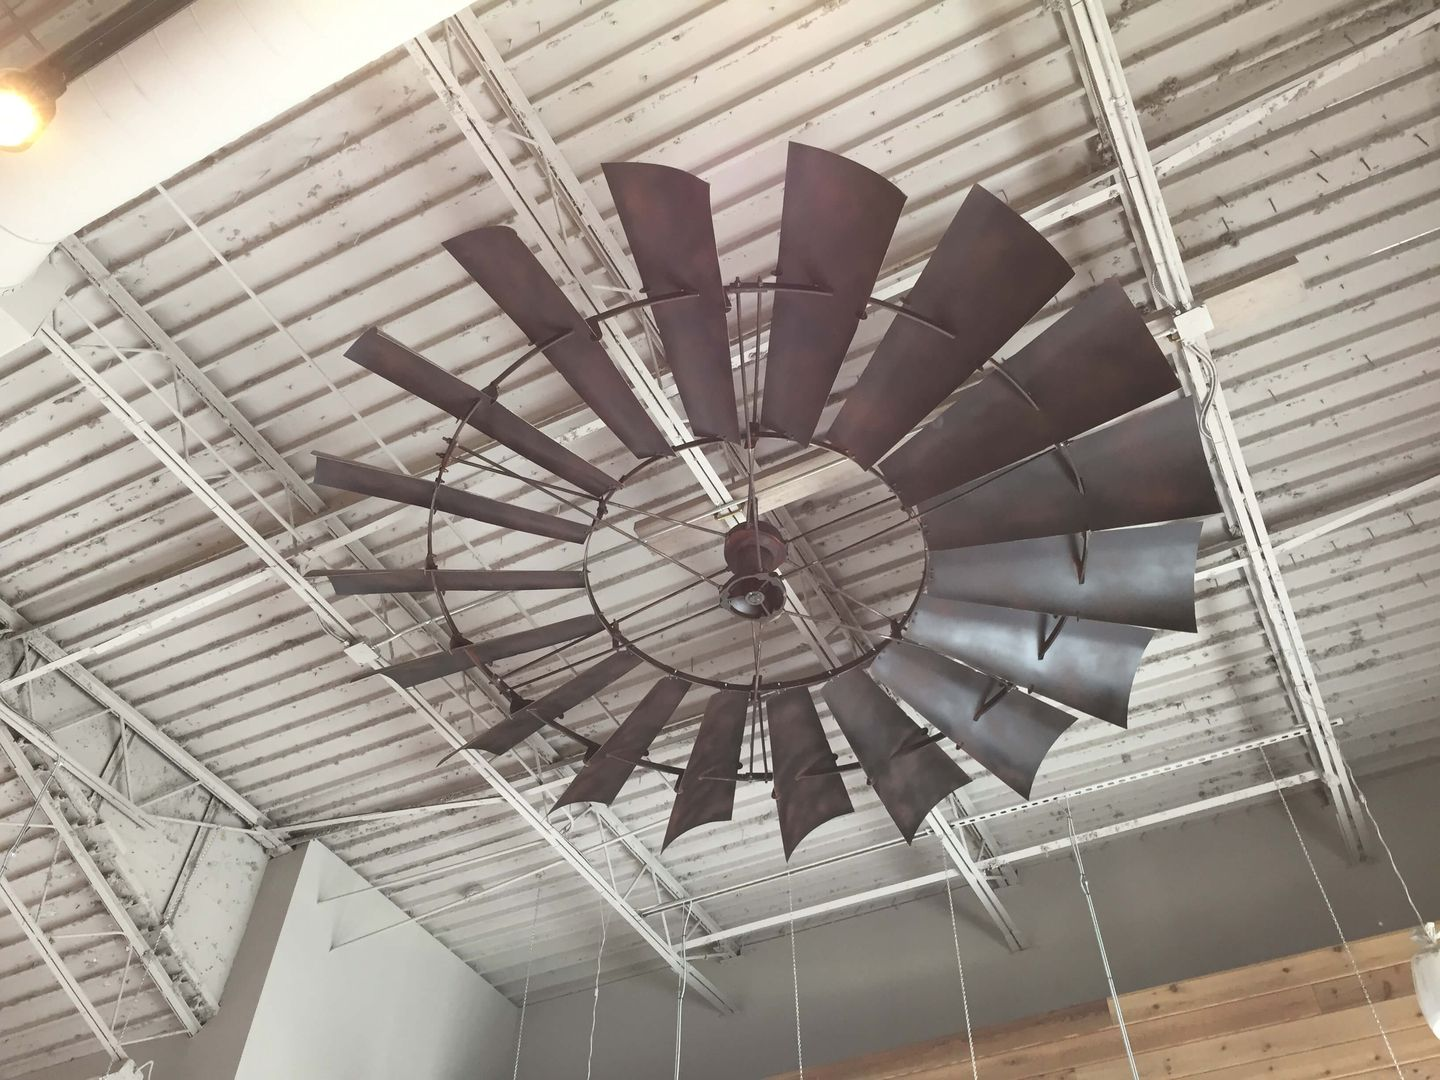 Unusual Ceiling Fans For Sale Windmill Ceiling Fans Of Texas Windmill Ceiling Fans Ceiling